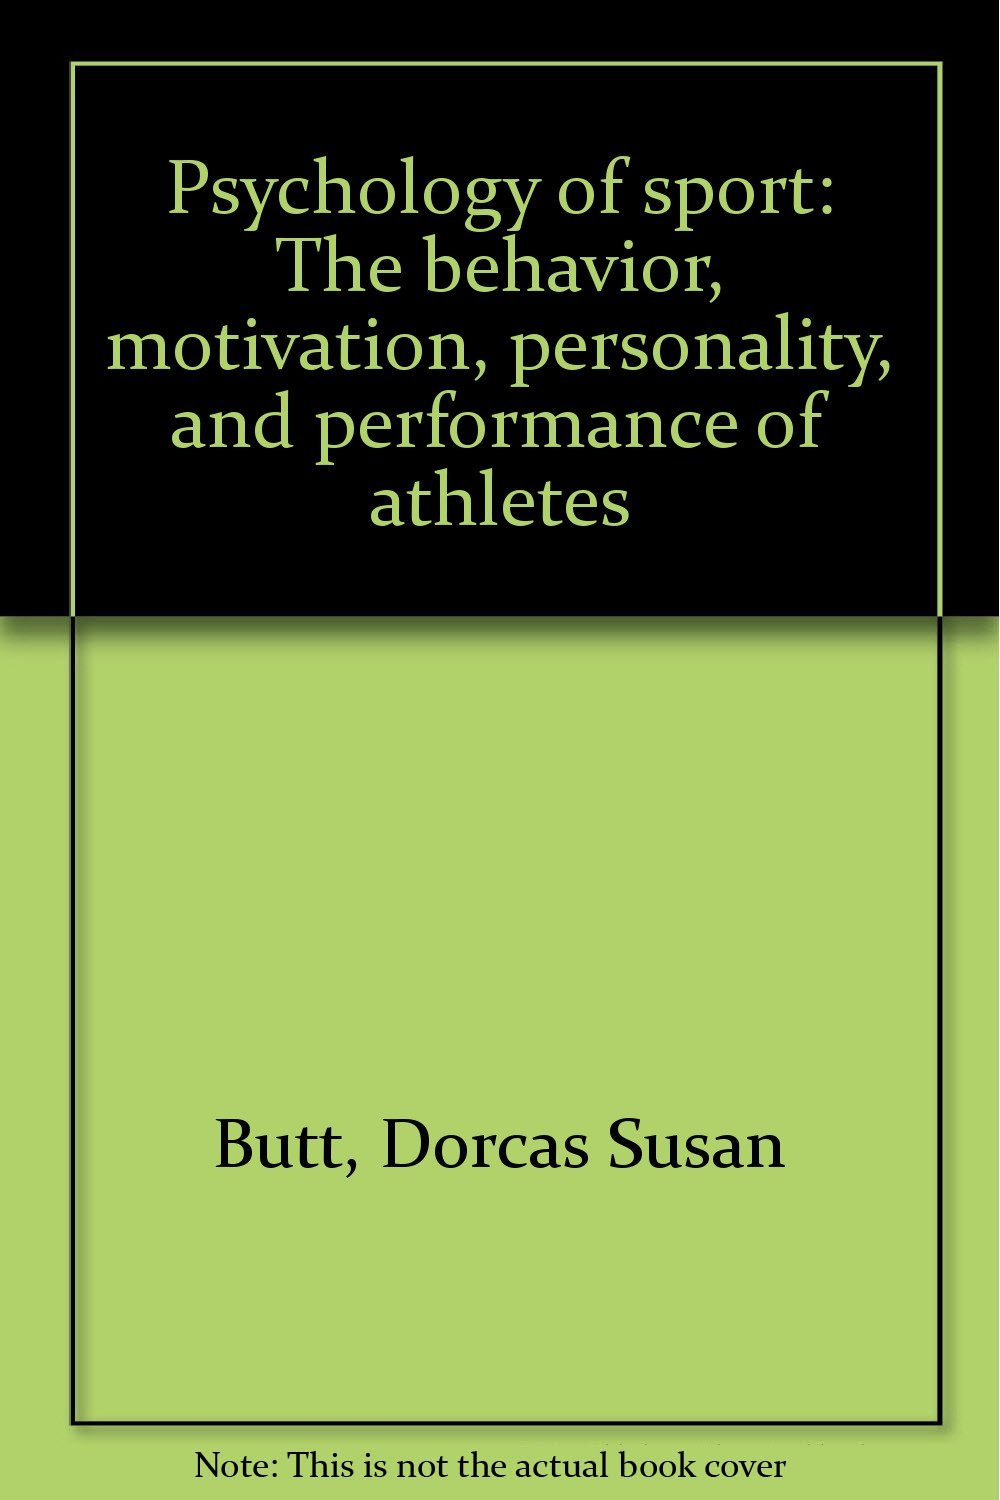 personality and motivation of sports perforance